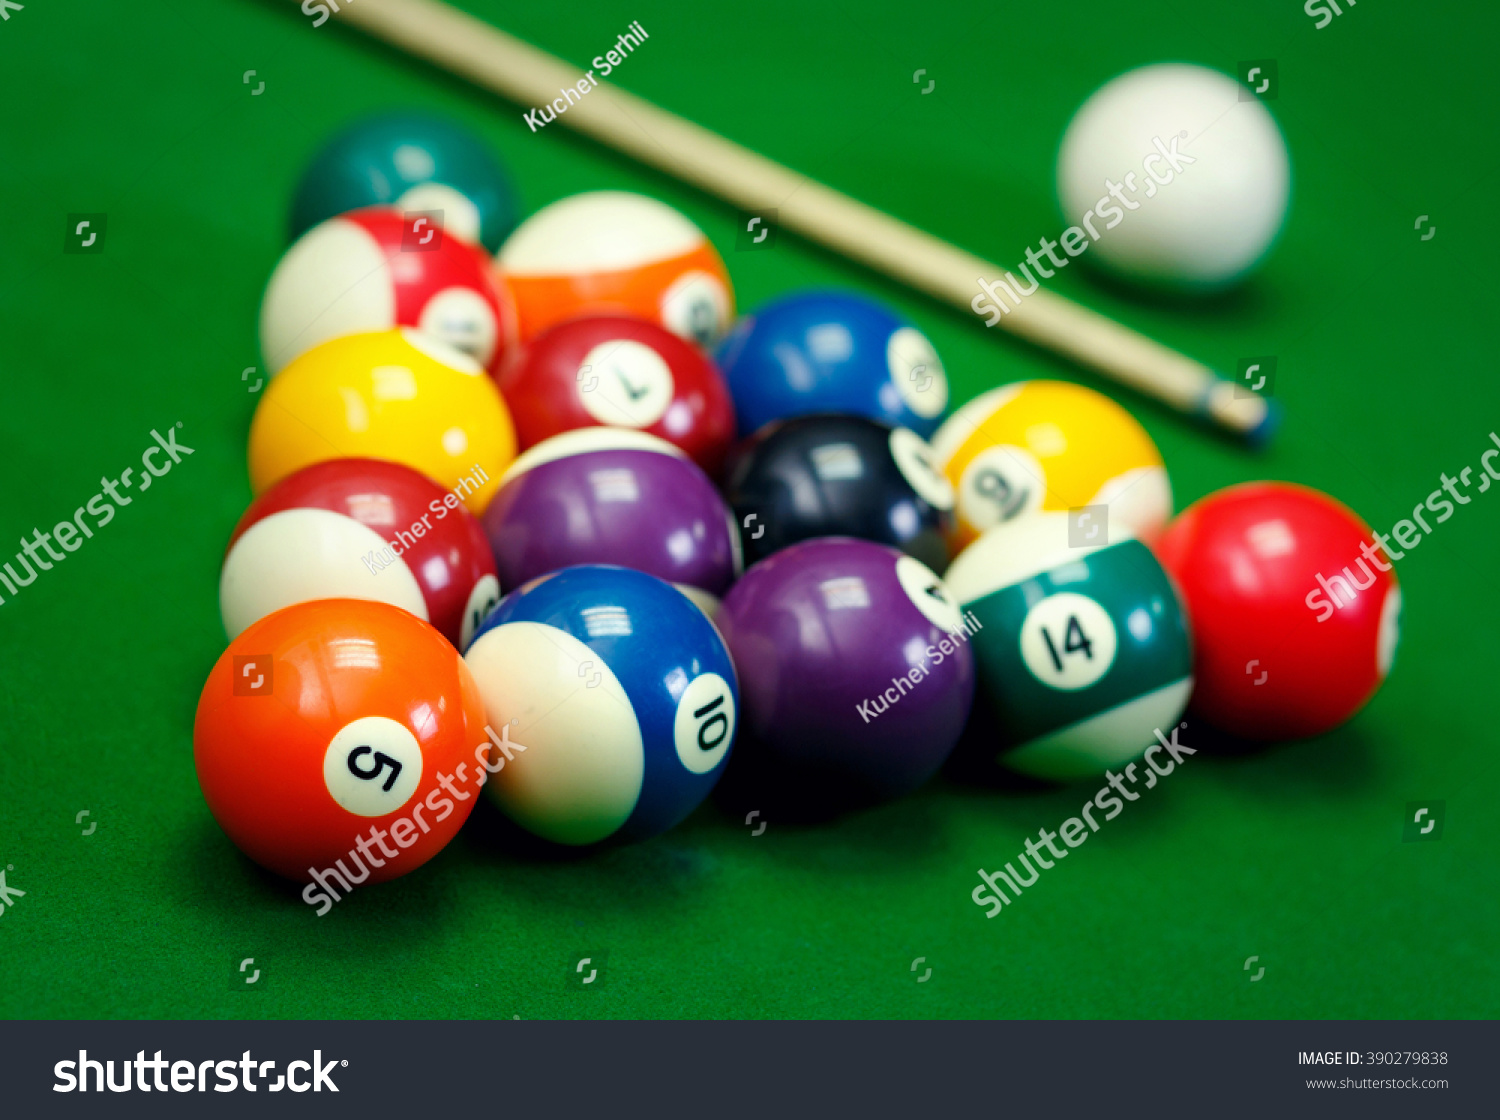 balls free stock billiard table royalty in photo a pool green image